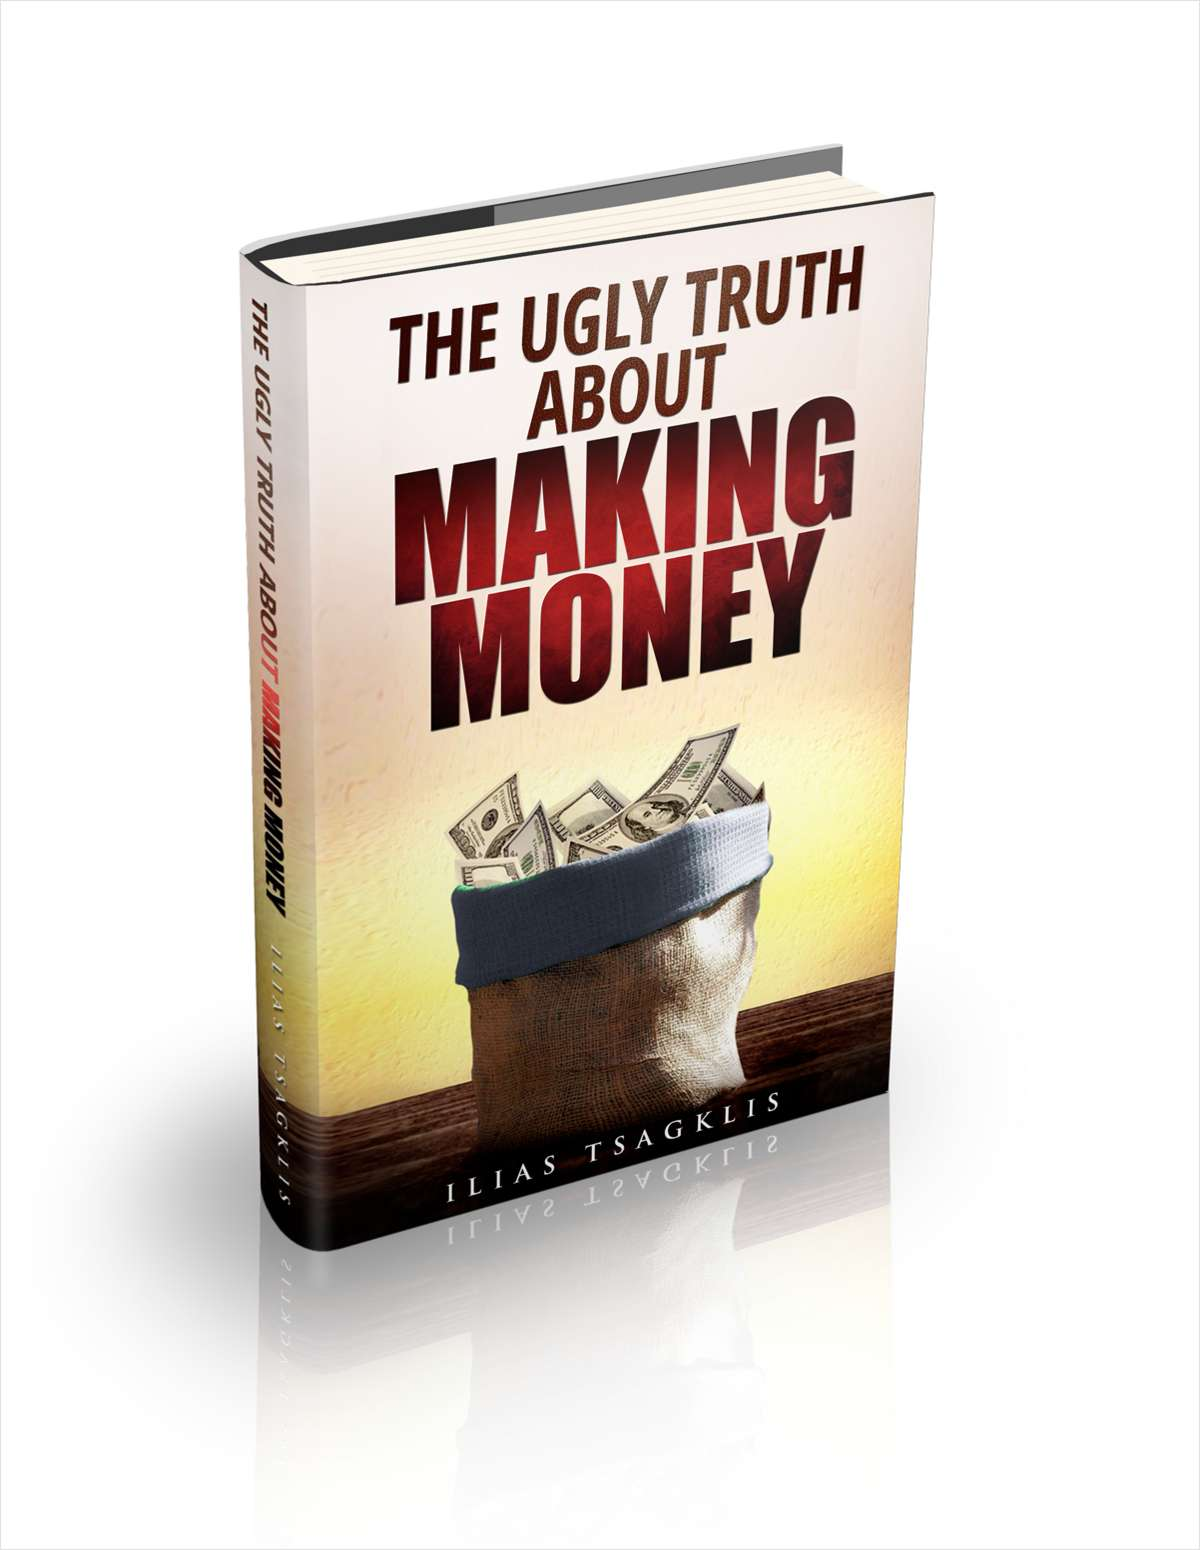 The Ugly Truth About Making Money